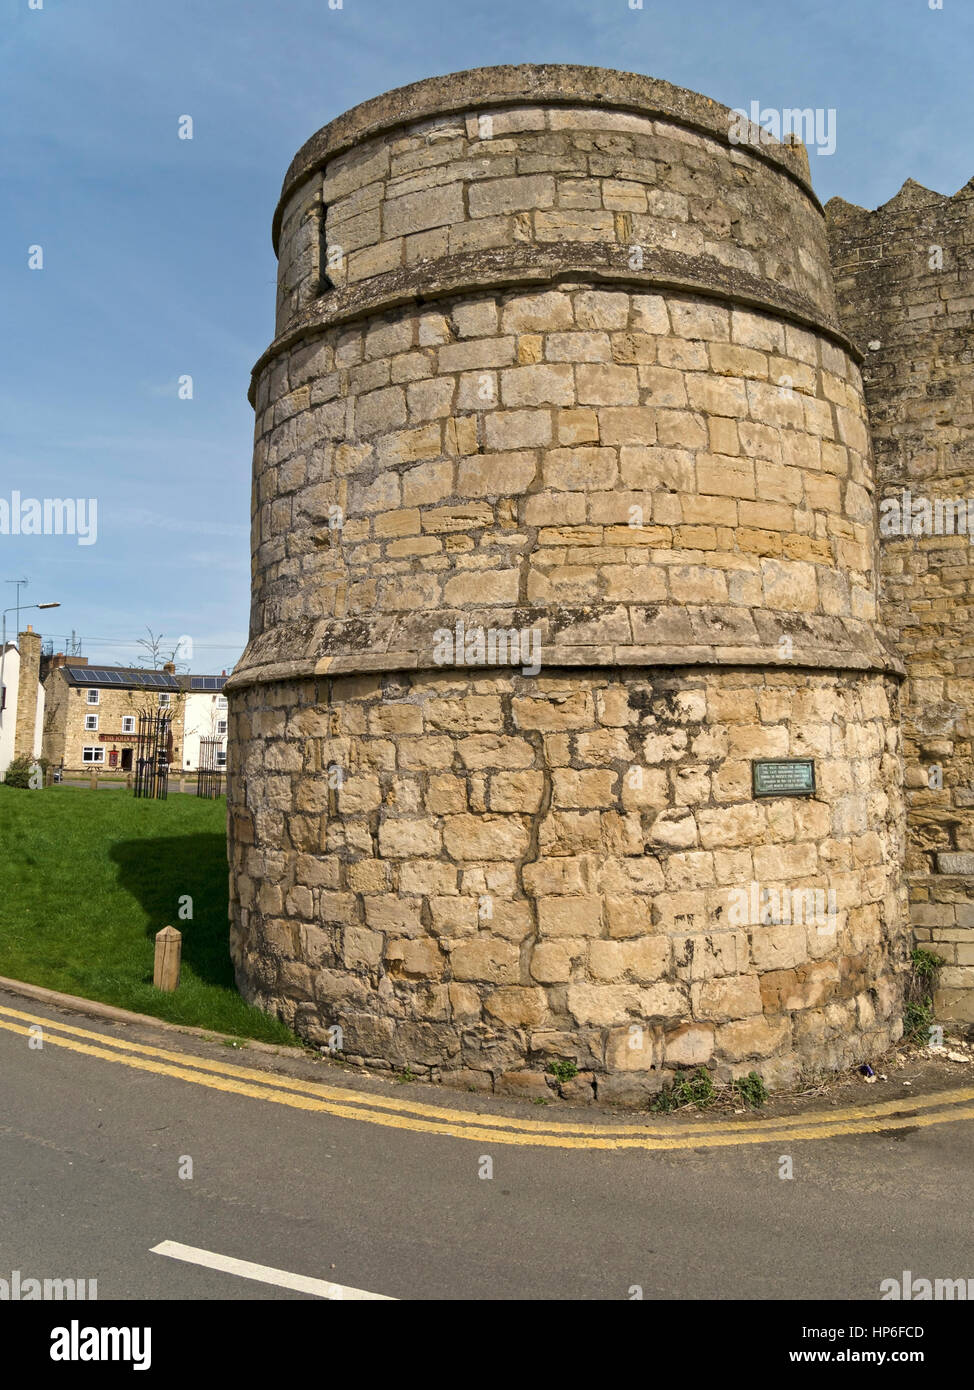 The only remaining stone town wall bastion tower, St Peter's Gate, Stamford, Lincolnshire, England, UK - Stock Image